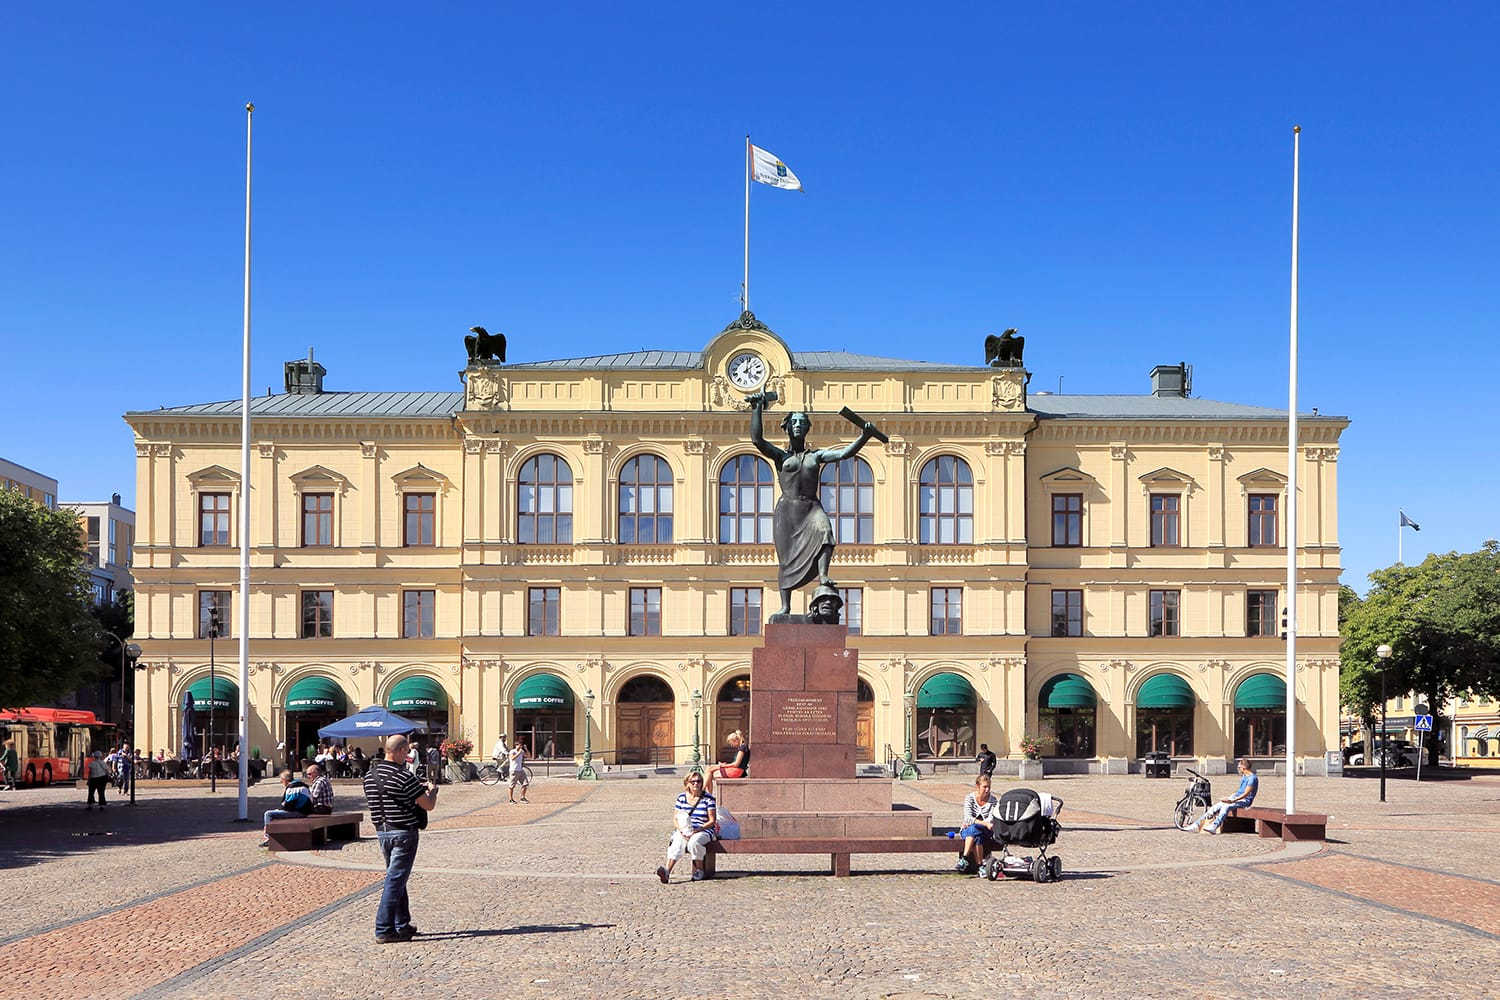 View of the main square with people and the old town hall behind the peace monument Freden during a sunny day with clear blue sky in Karlstad, Sweden